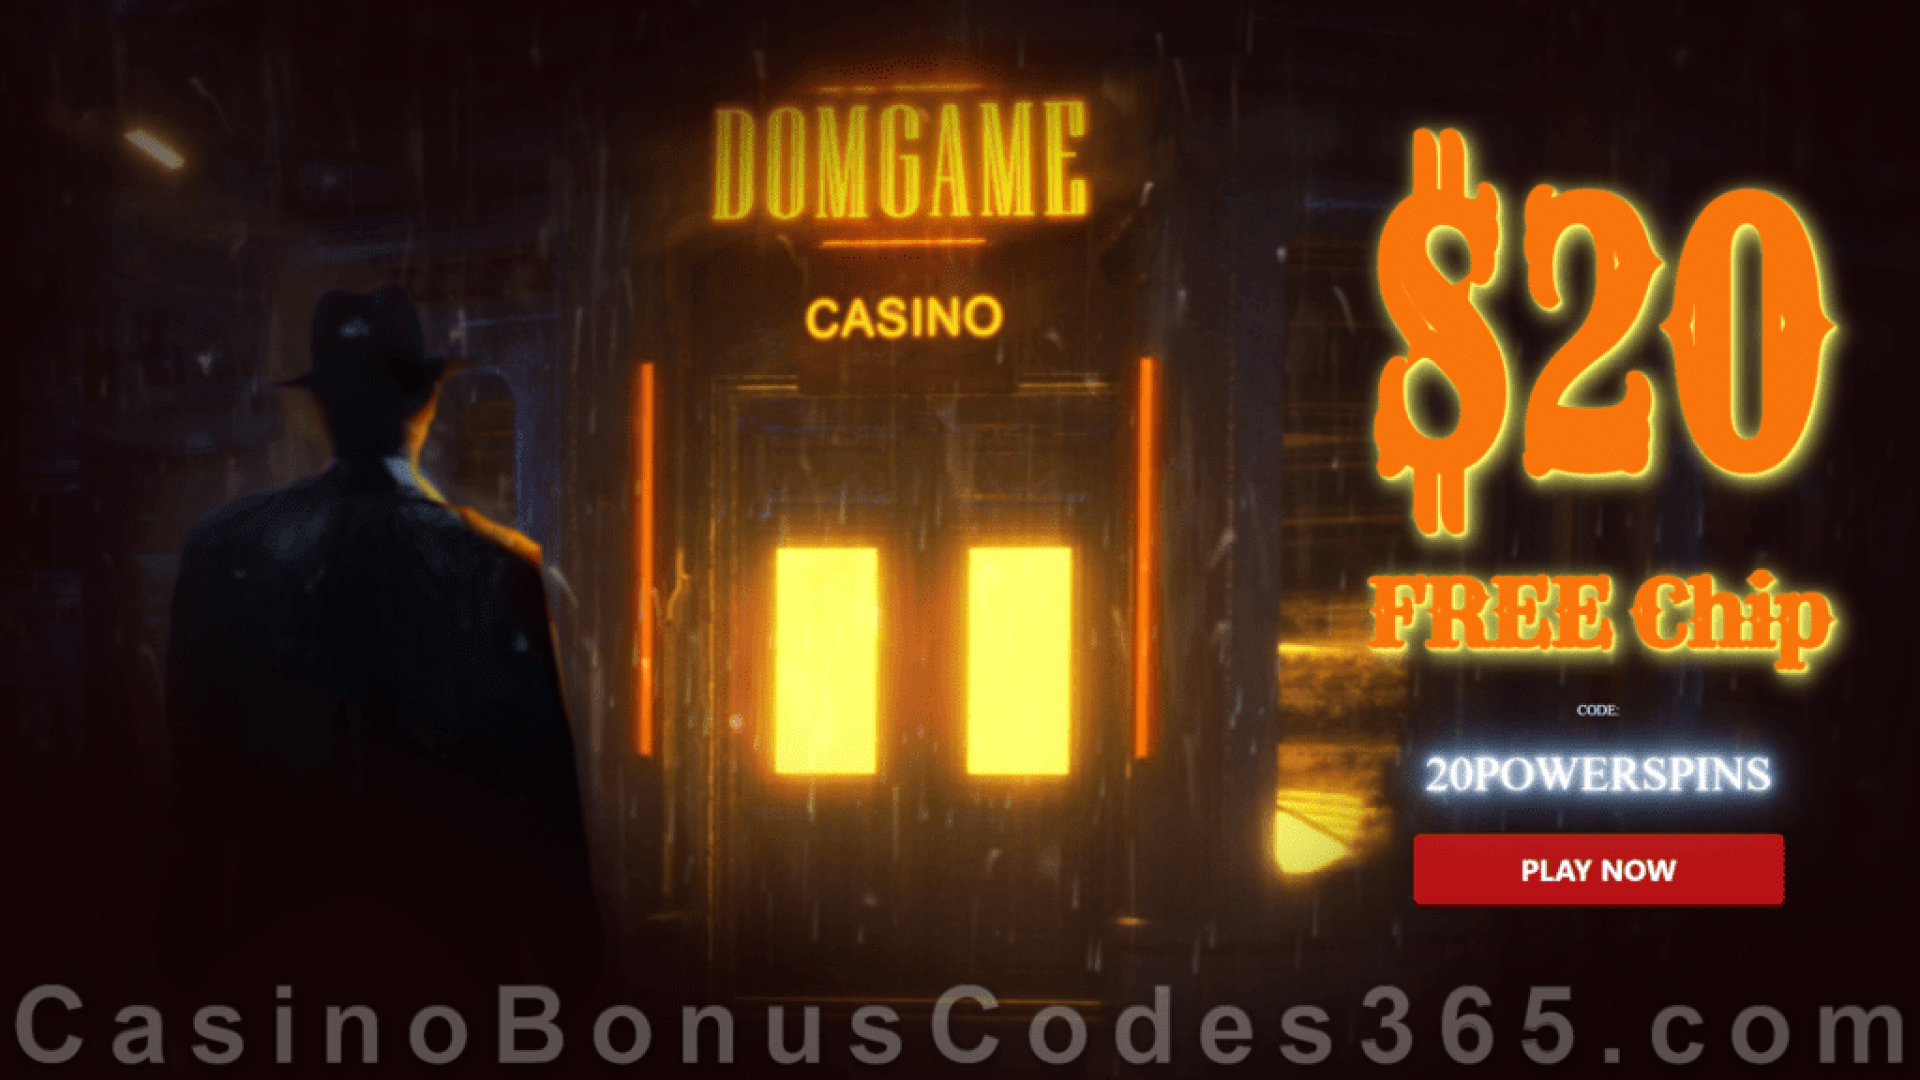 DomGame Casino Exclusive $20 FREE Chips No Deposit Welcome Offer